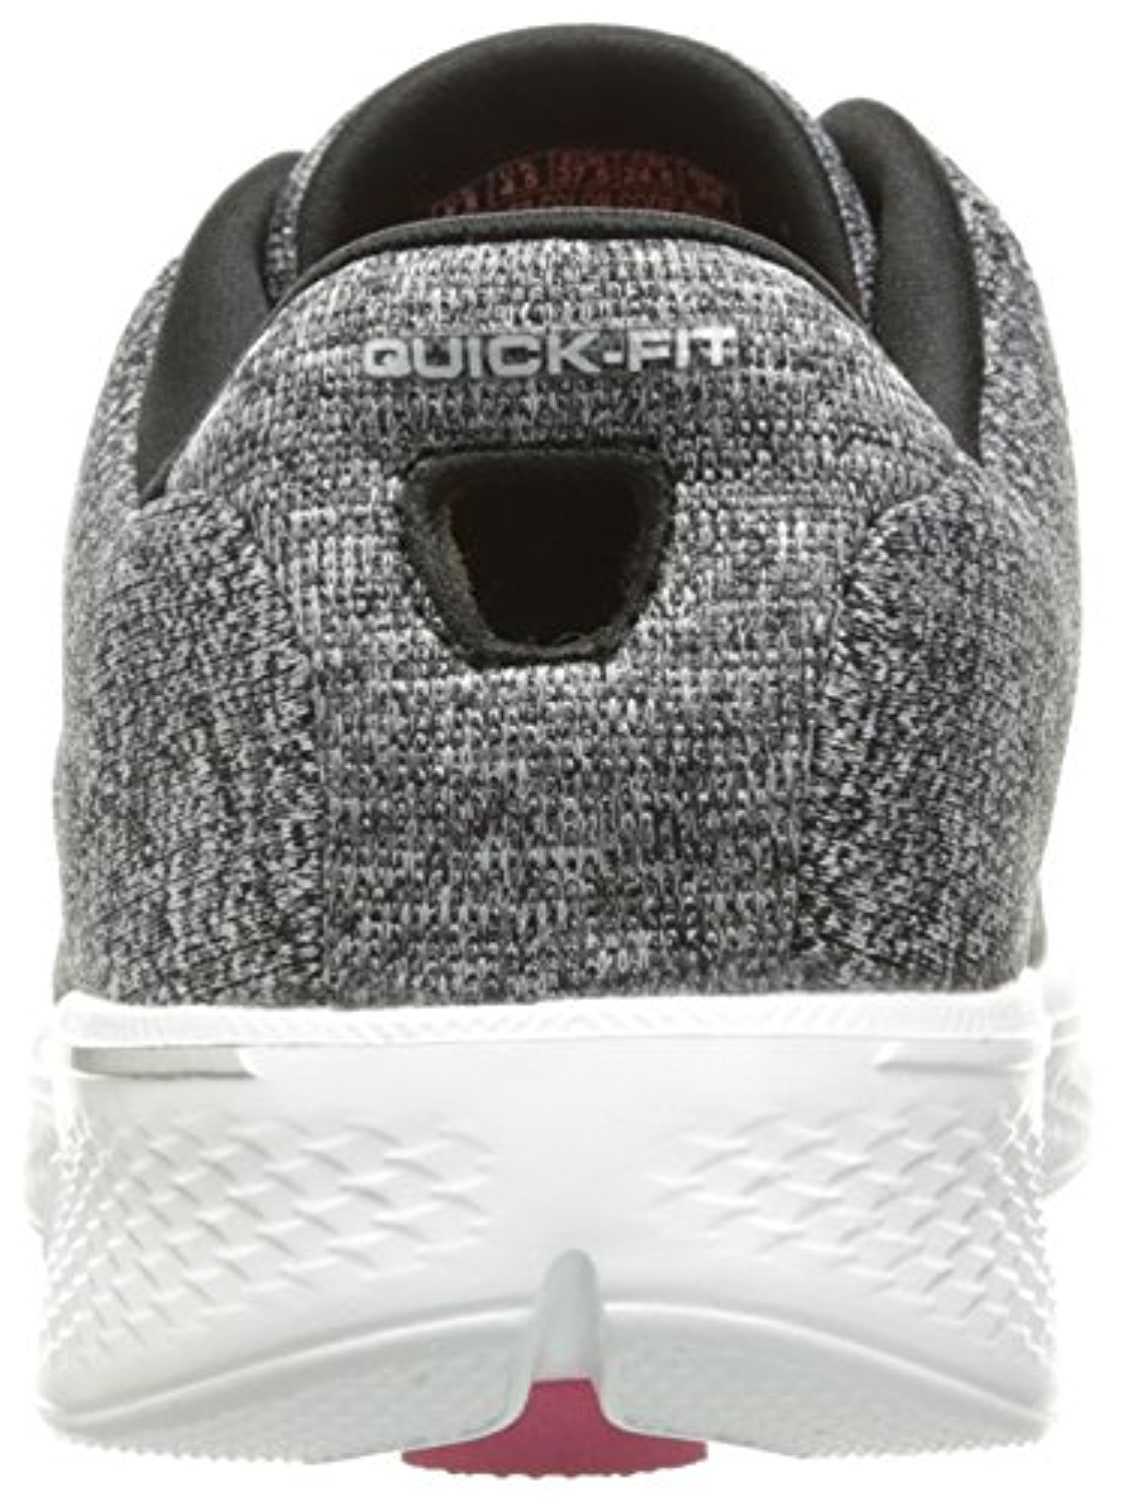 Skechers Performance Women's Go 4-14178 Walking Shoe, Black/White Knit, 7.5 M US